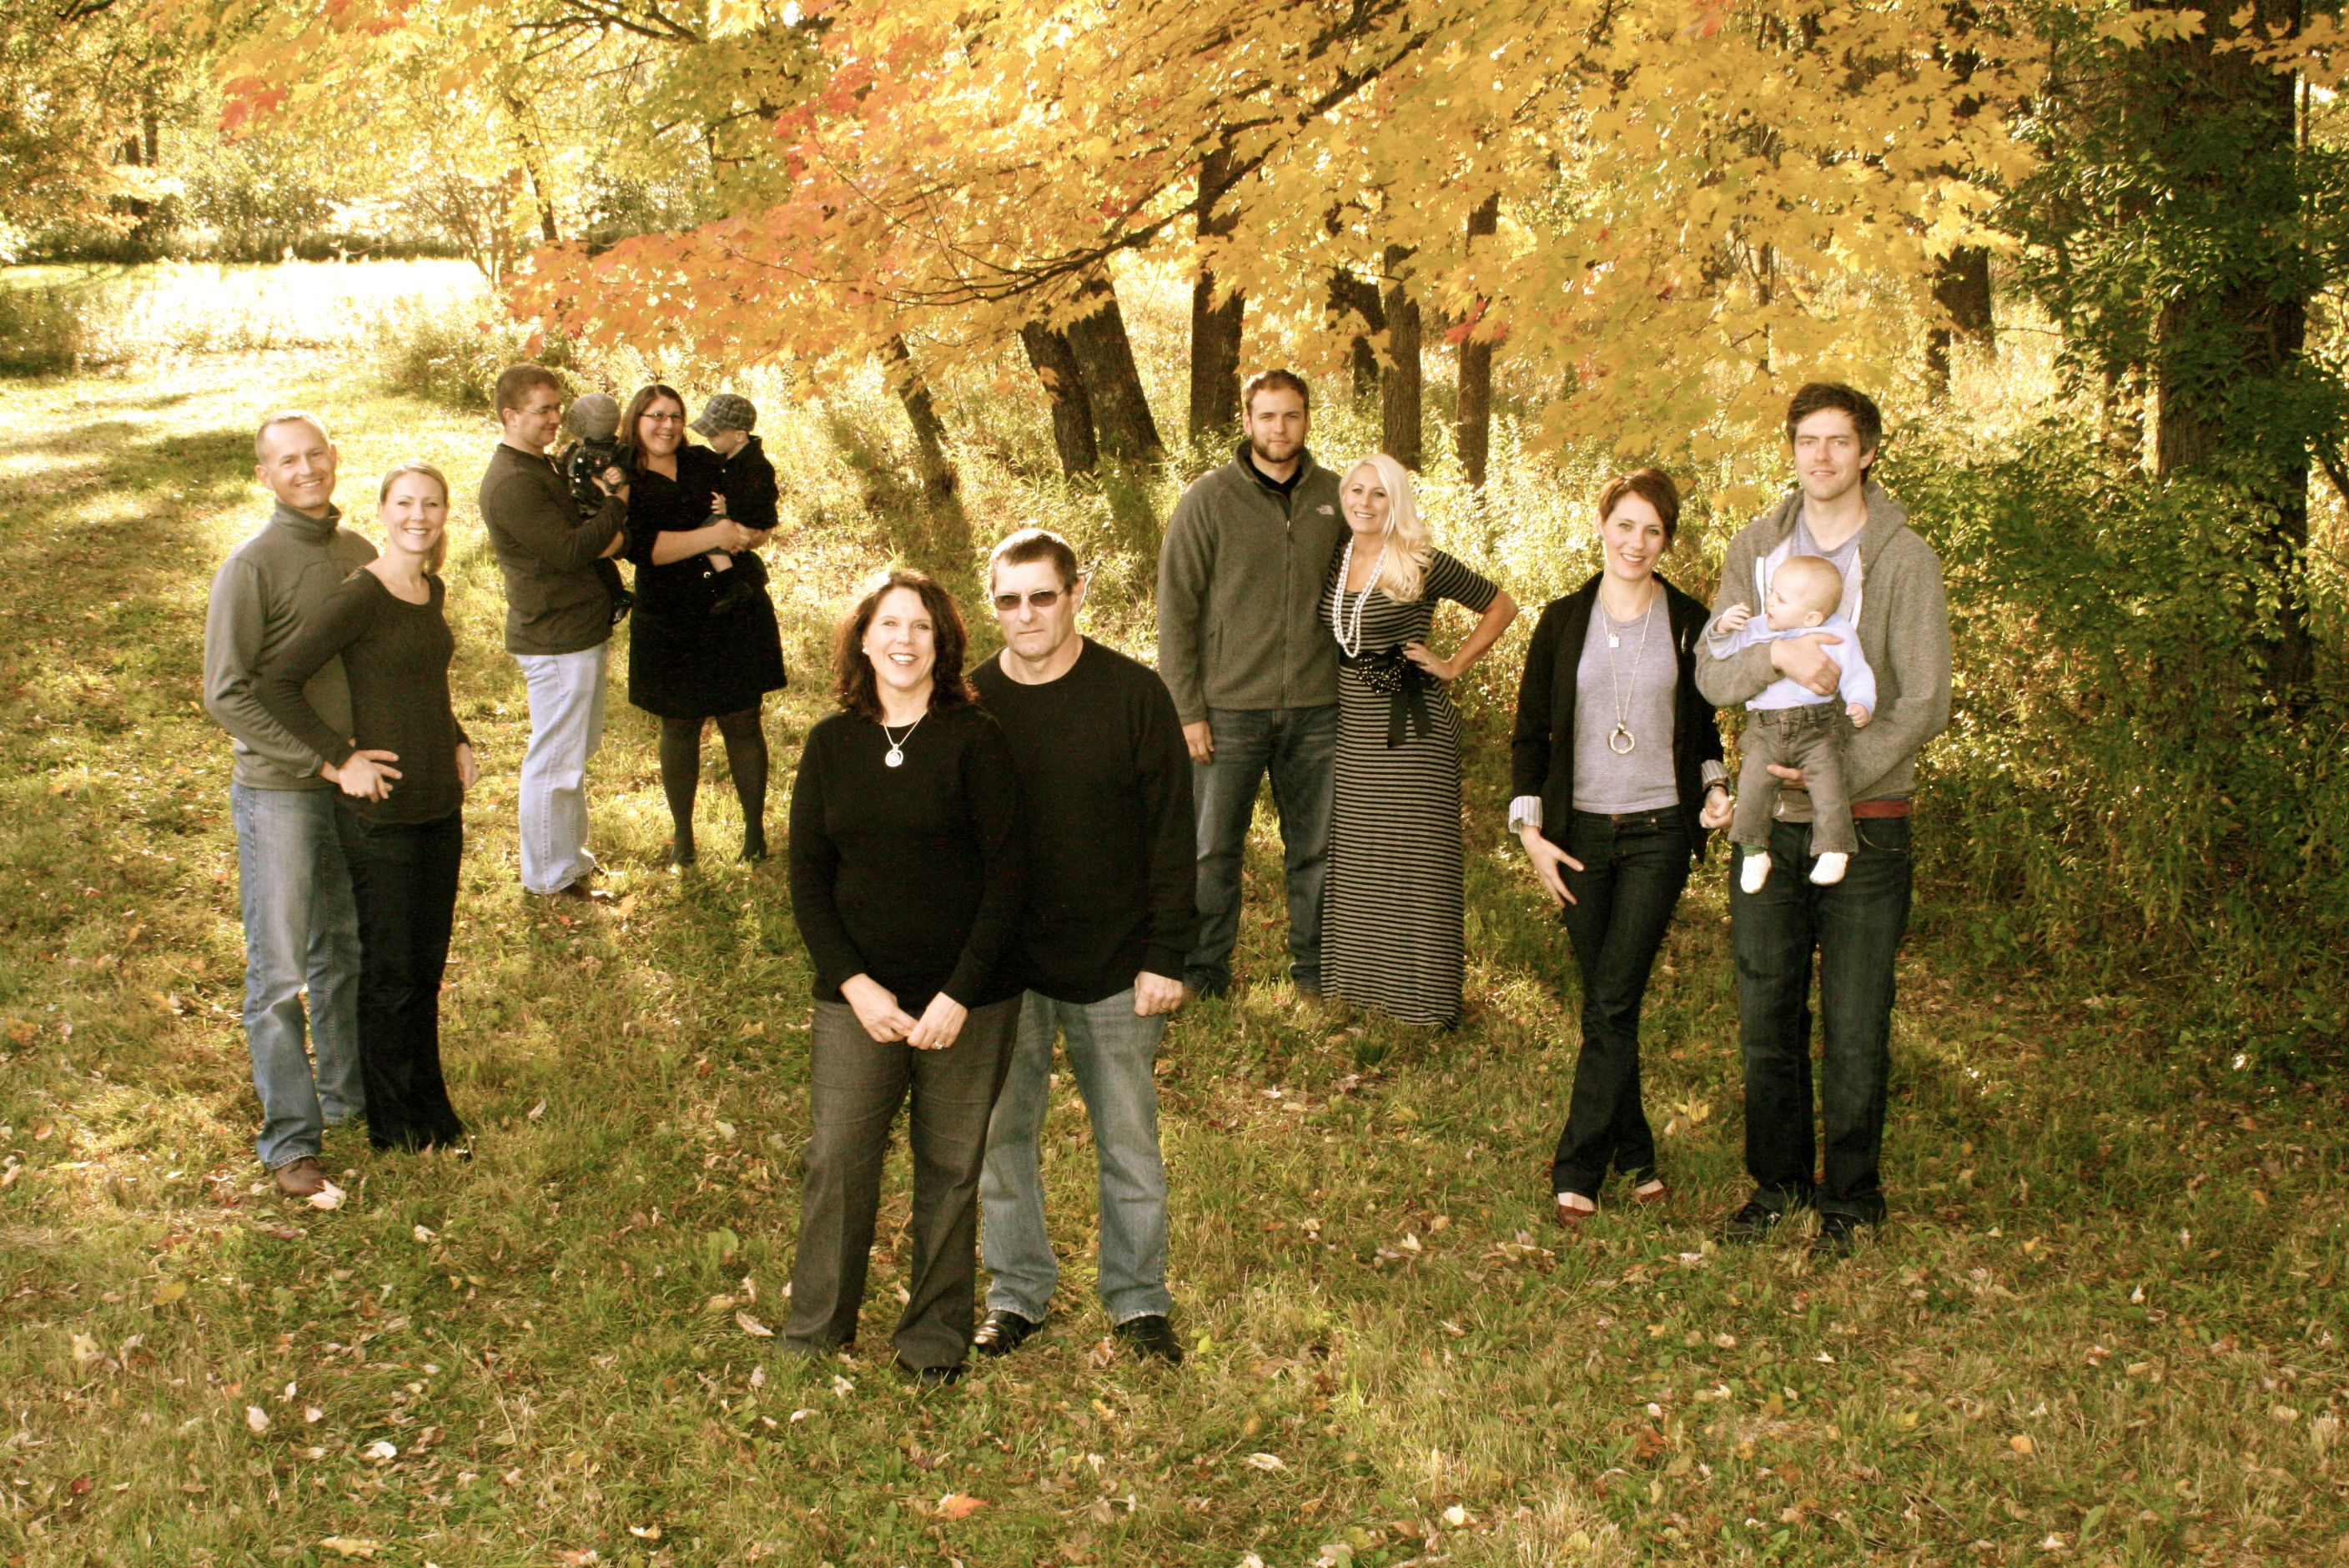 fall family pictures photo ideas pinterest On family ideas